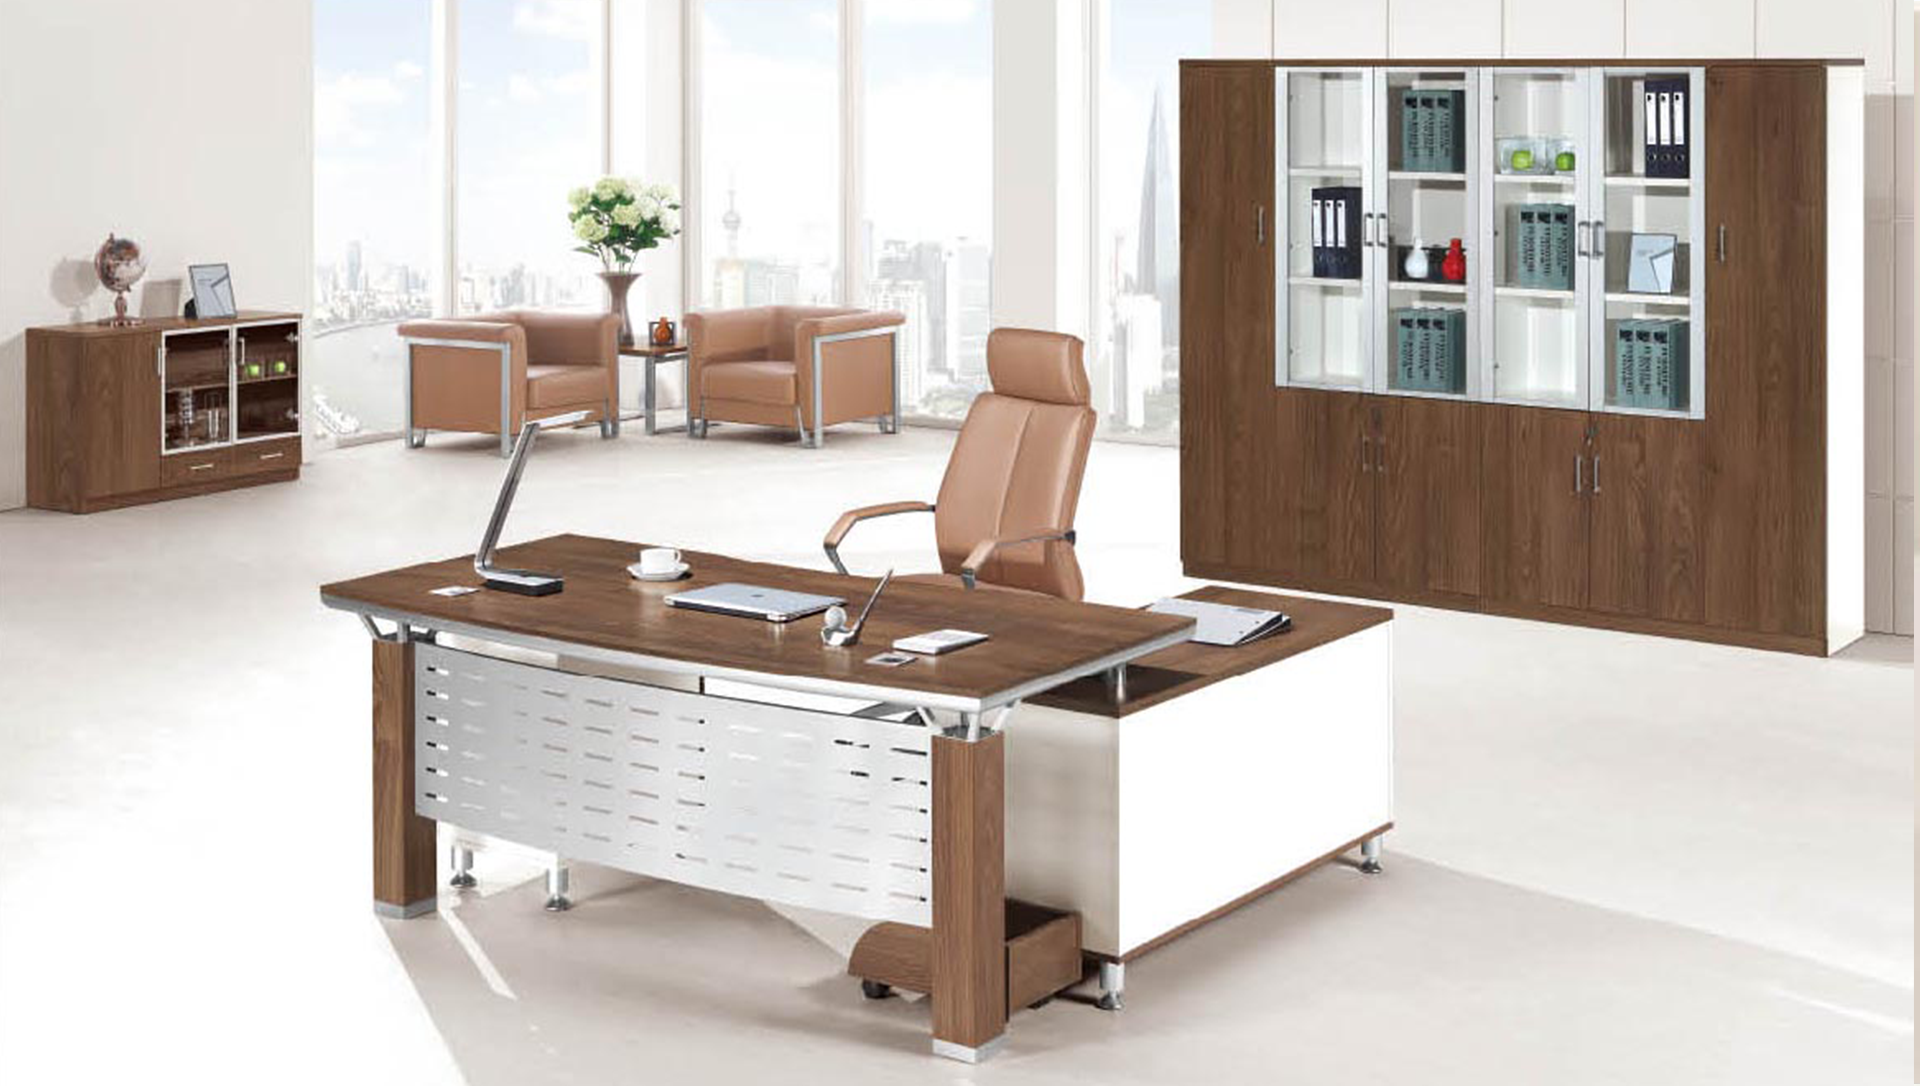 Magnificent Impress Office Furniture Led Lighting Perth Office Download Free Architecture Designs Rallybritishbridgeorg